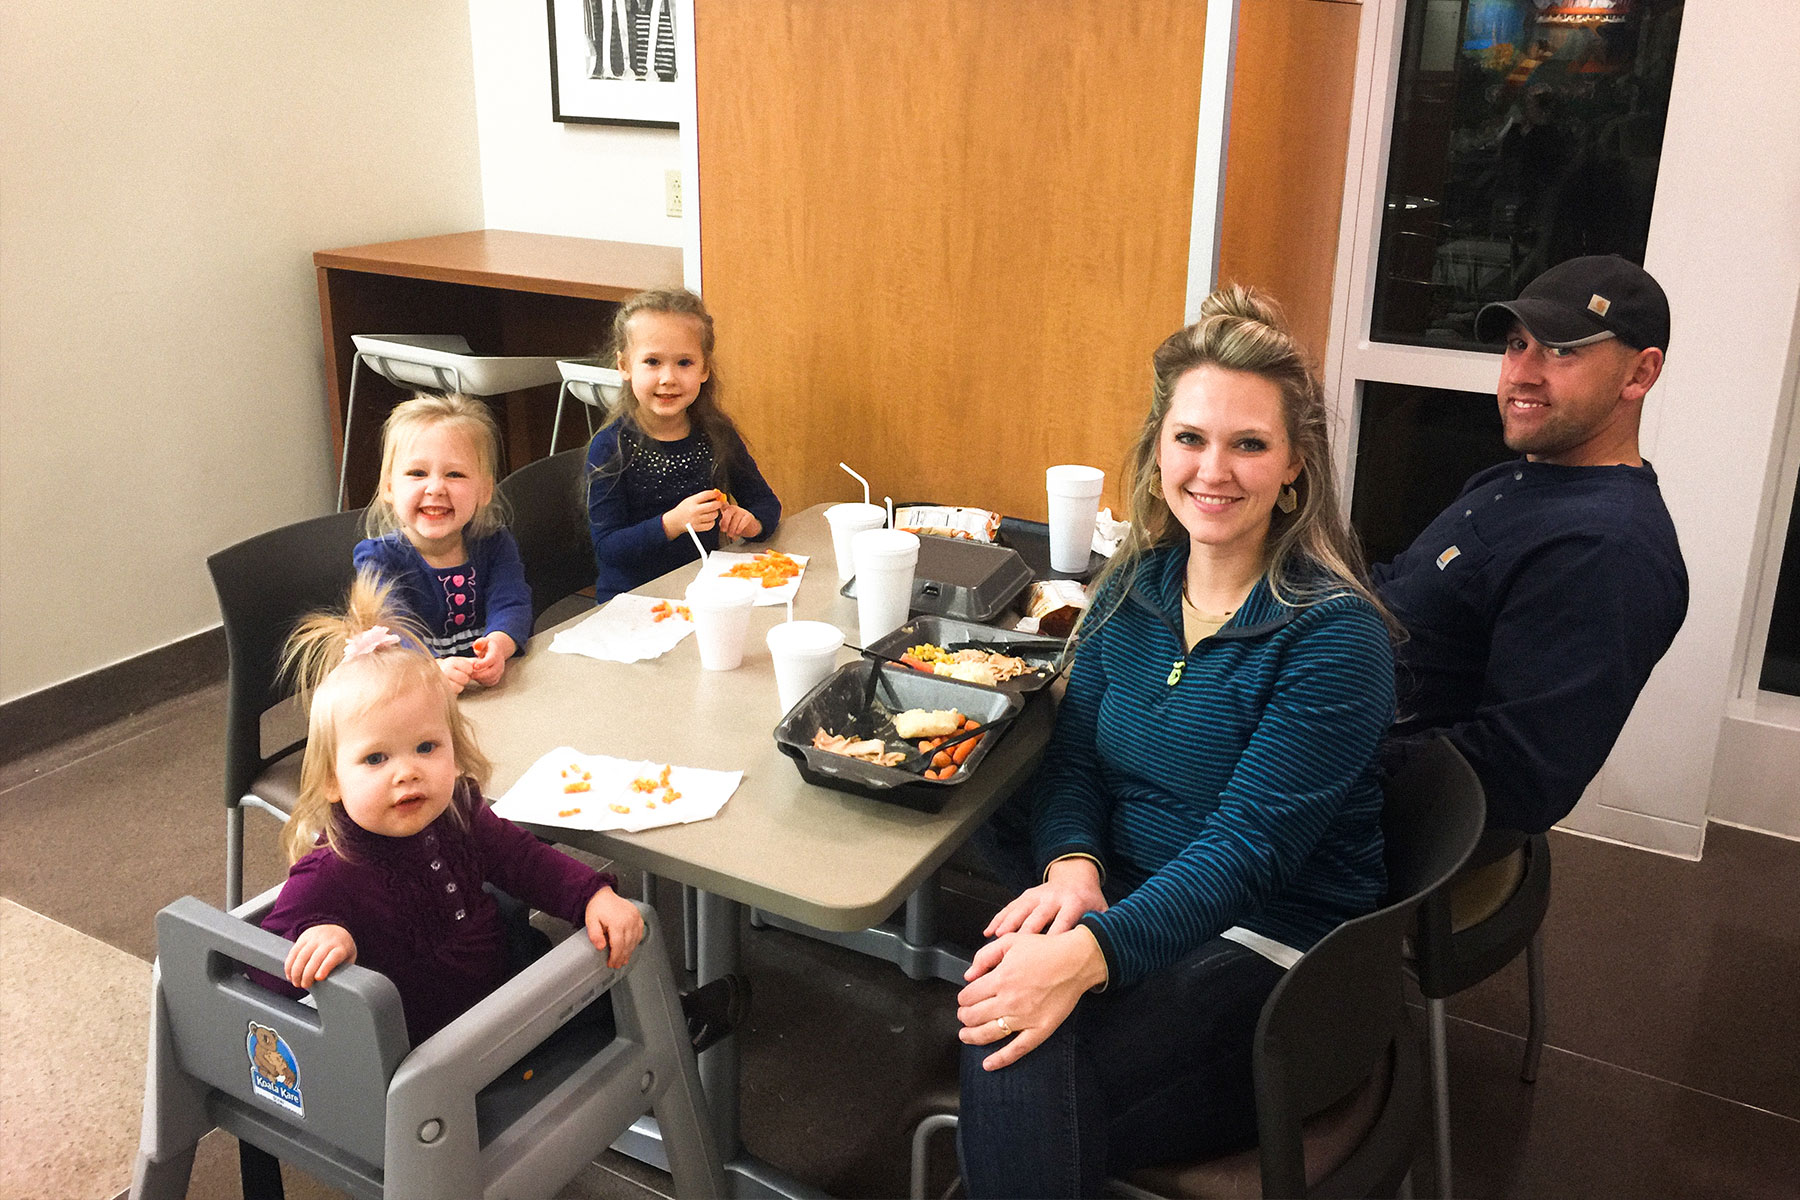 Courtney and her family eat Thanksgiving dinner at the hospital cafeteria.